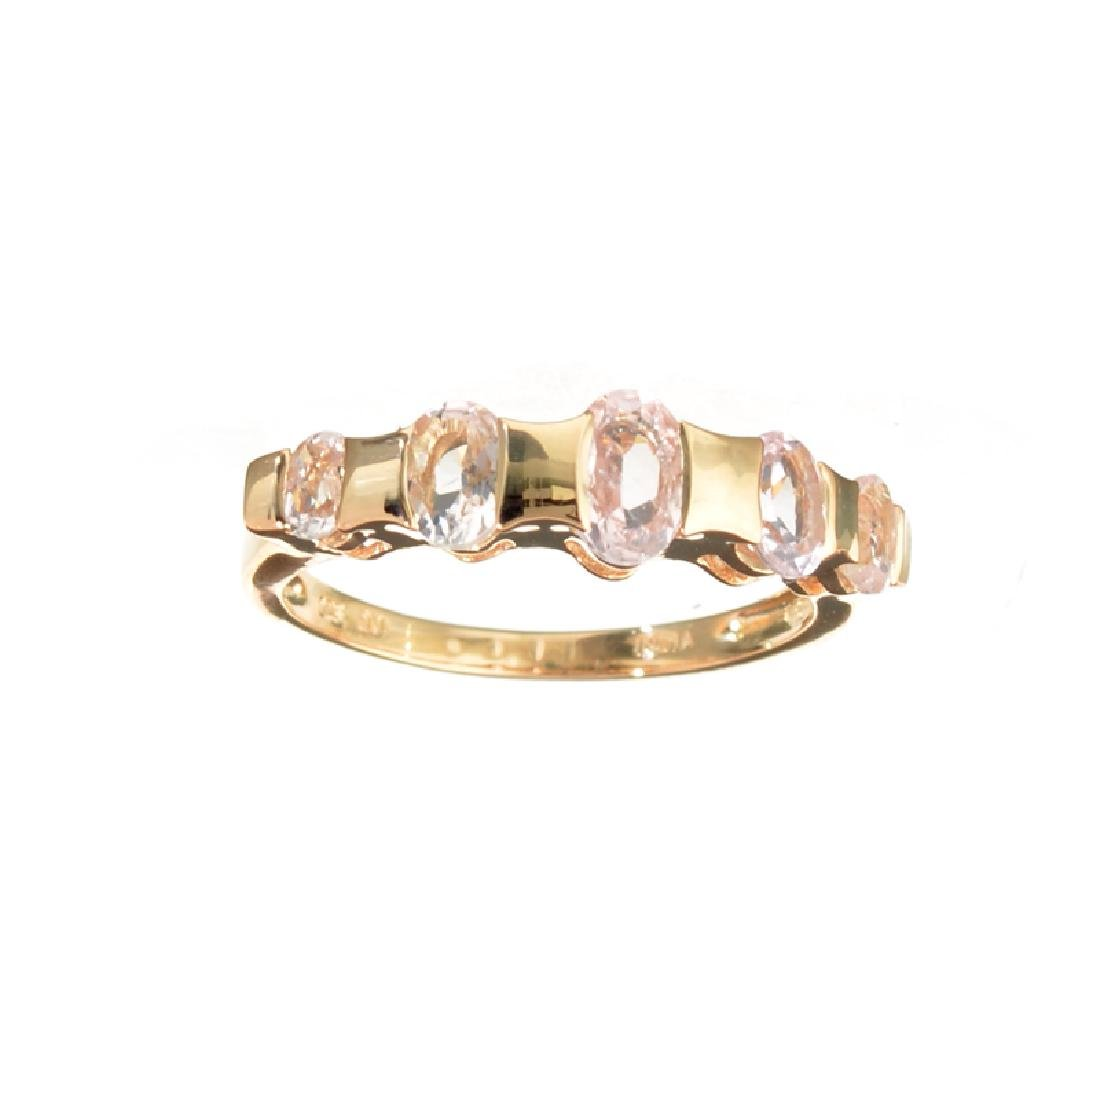 APP: 0.9k Fine Jewelry 1.33CT Oval Cut Morganite Over